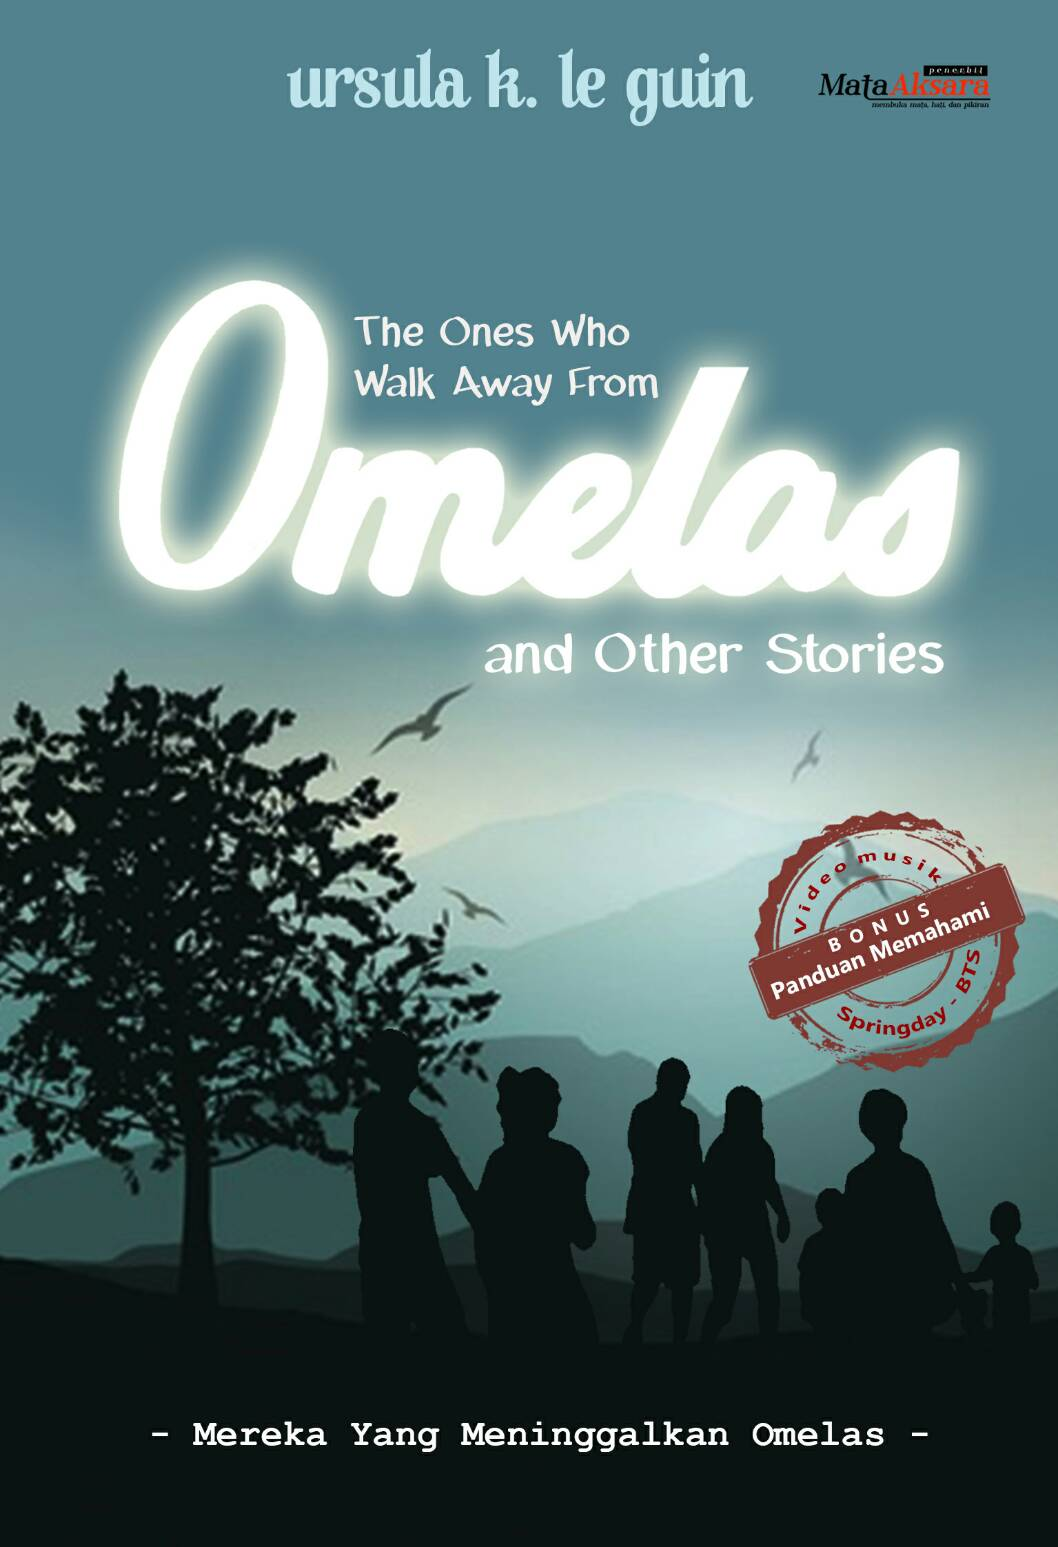 who walks away from omelas Le guin's a wizard of earthsea and the ones who walk away from omelas are just two examples of her prolific and influential writing career in fantasy and science fiction.